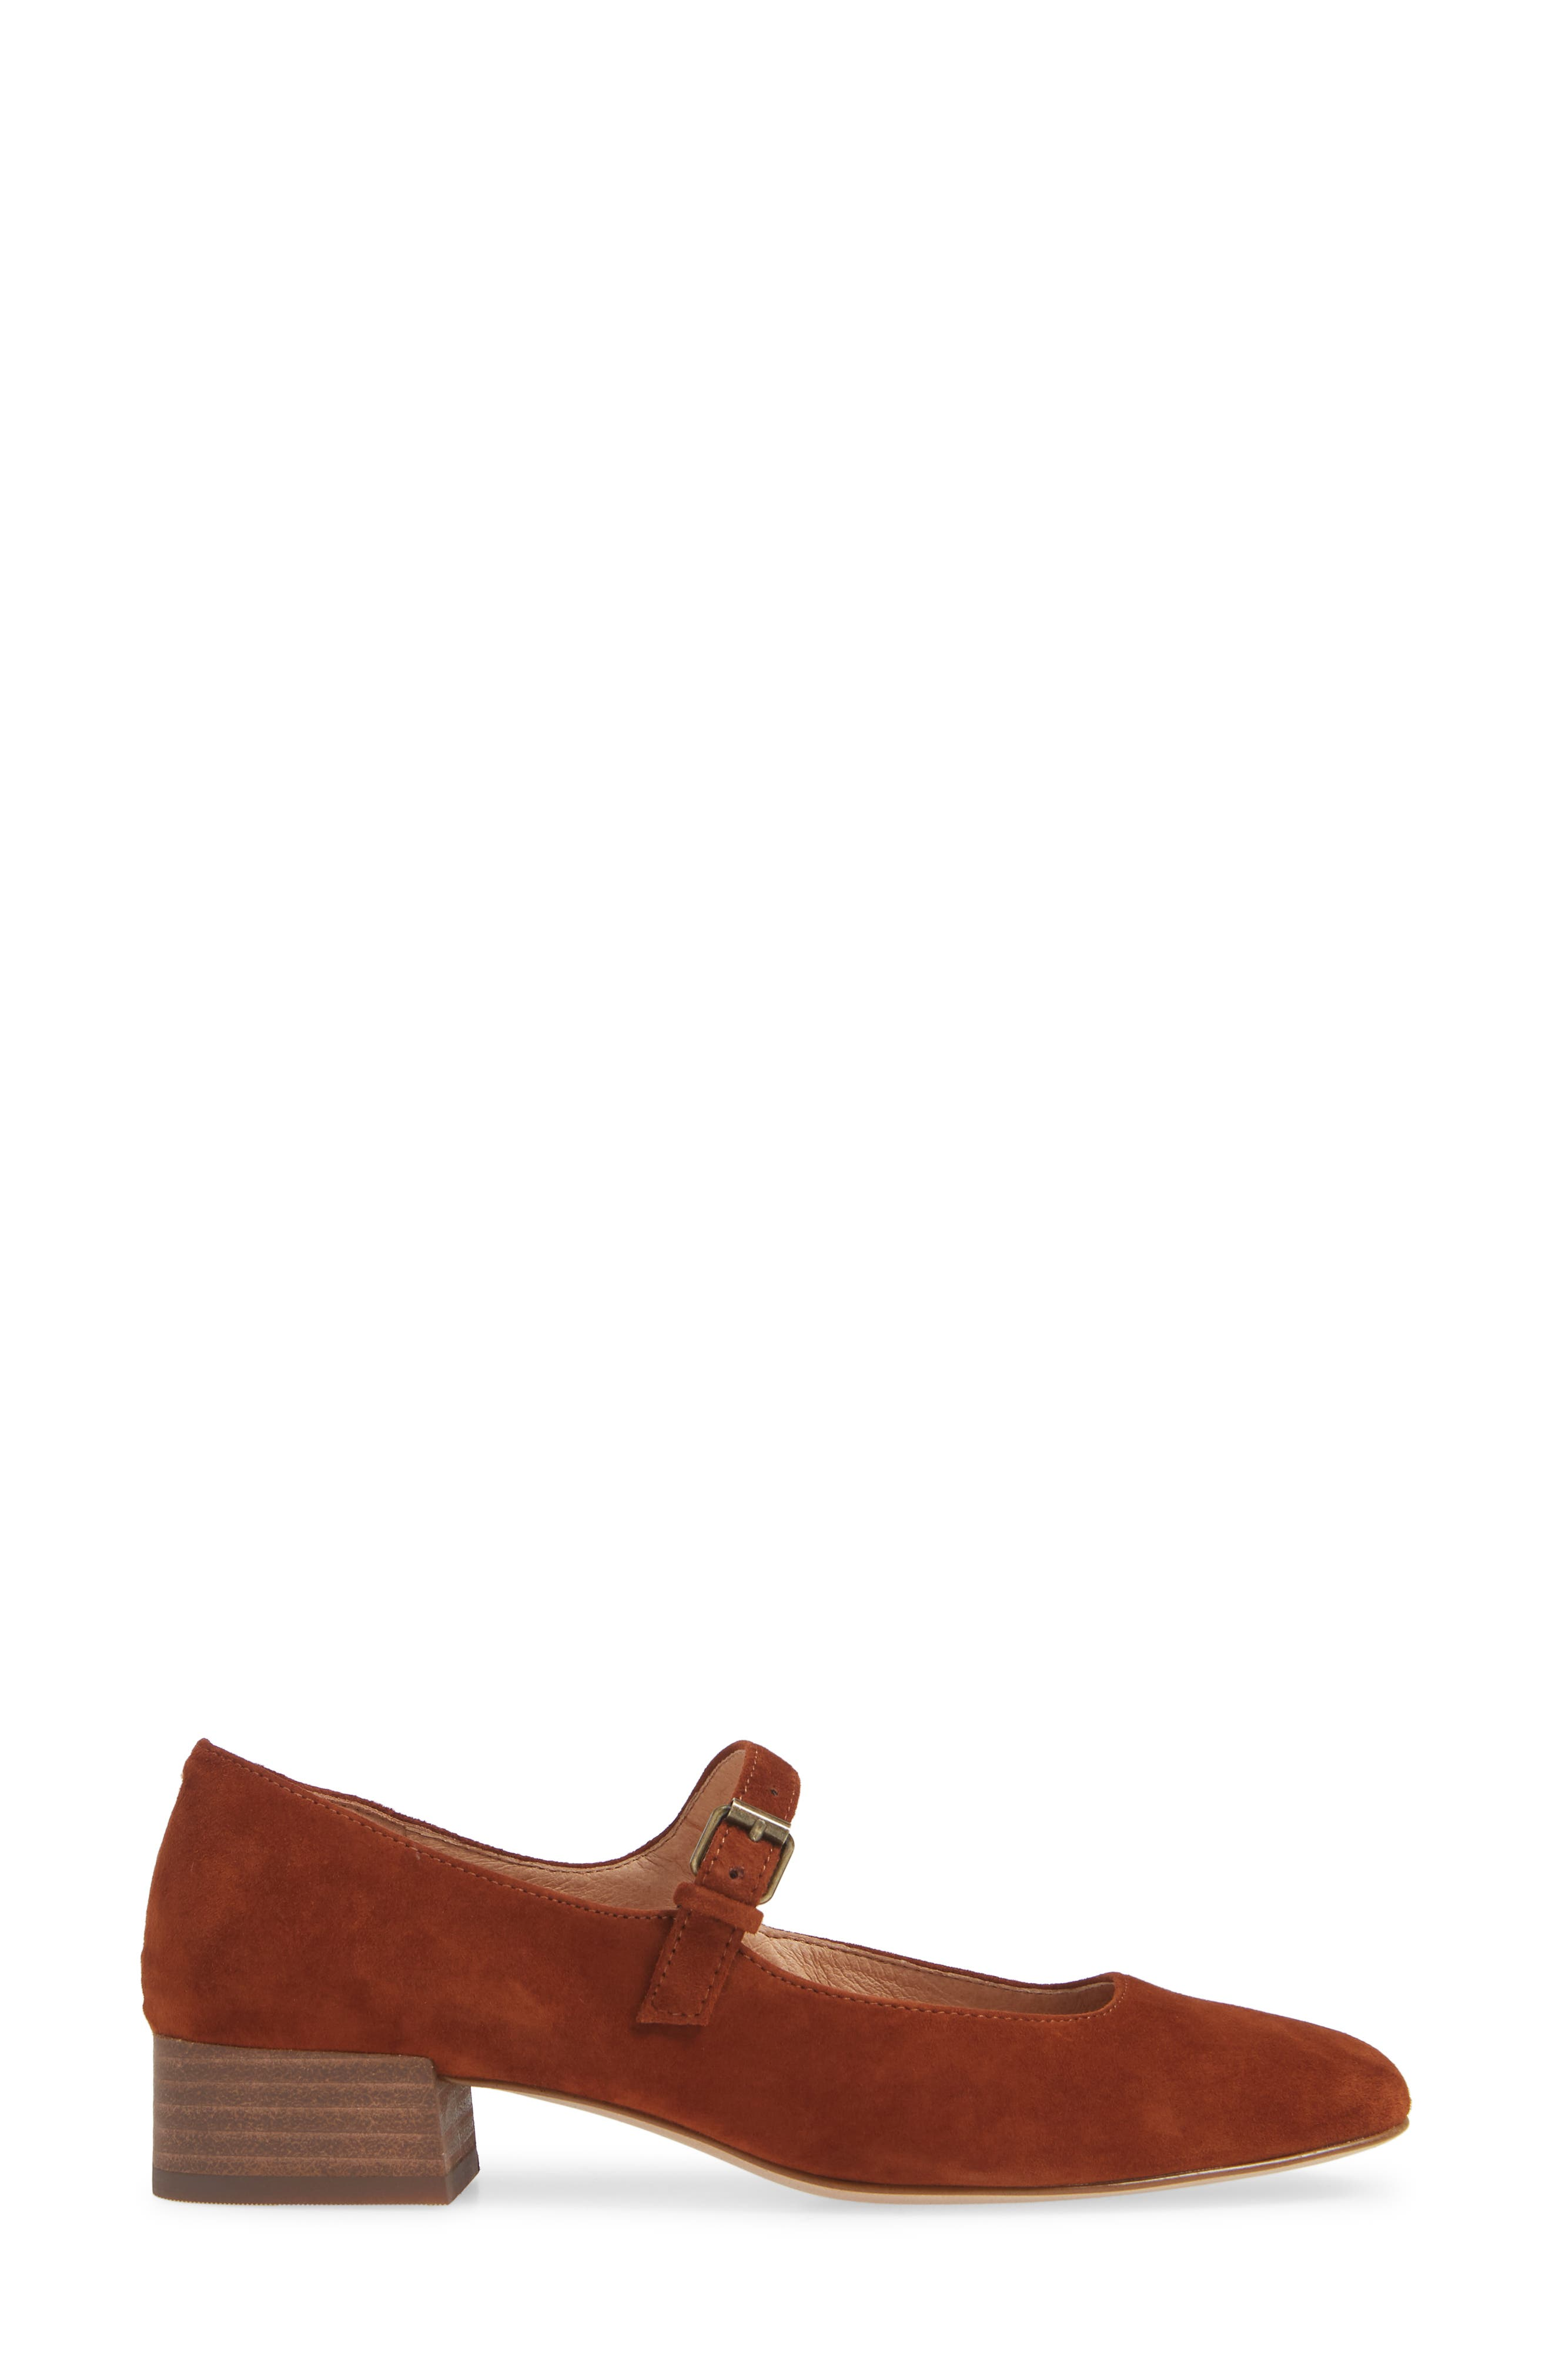 The Delilah Mary Jane Pump,                             Alternate thumbnail 3, color,                             MAPLE SYRUP SUEDE